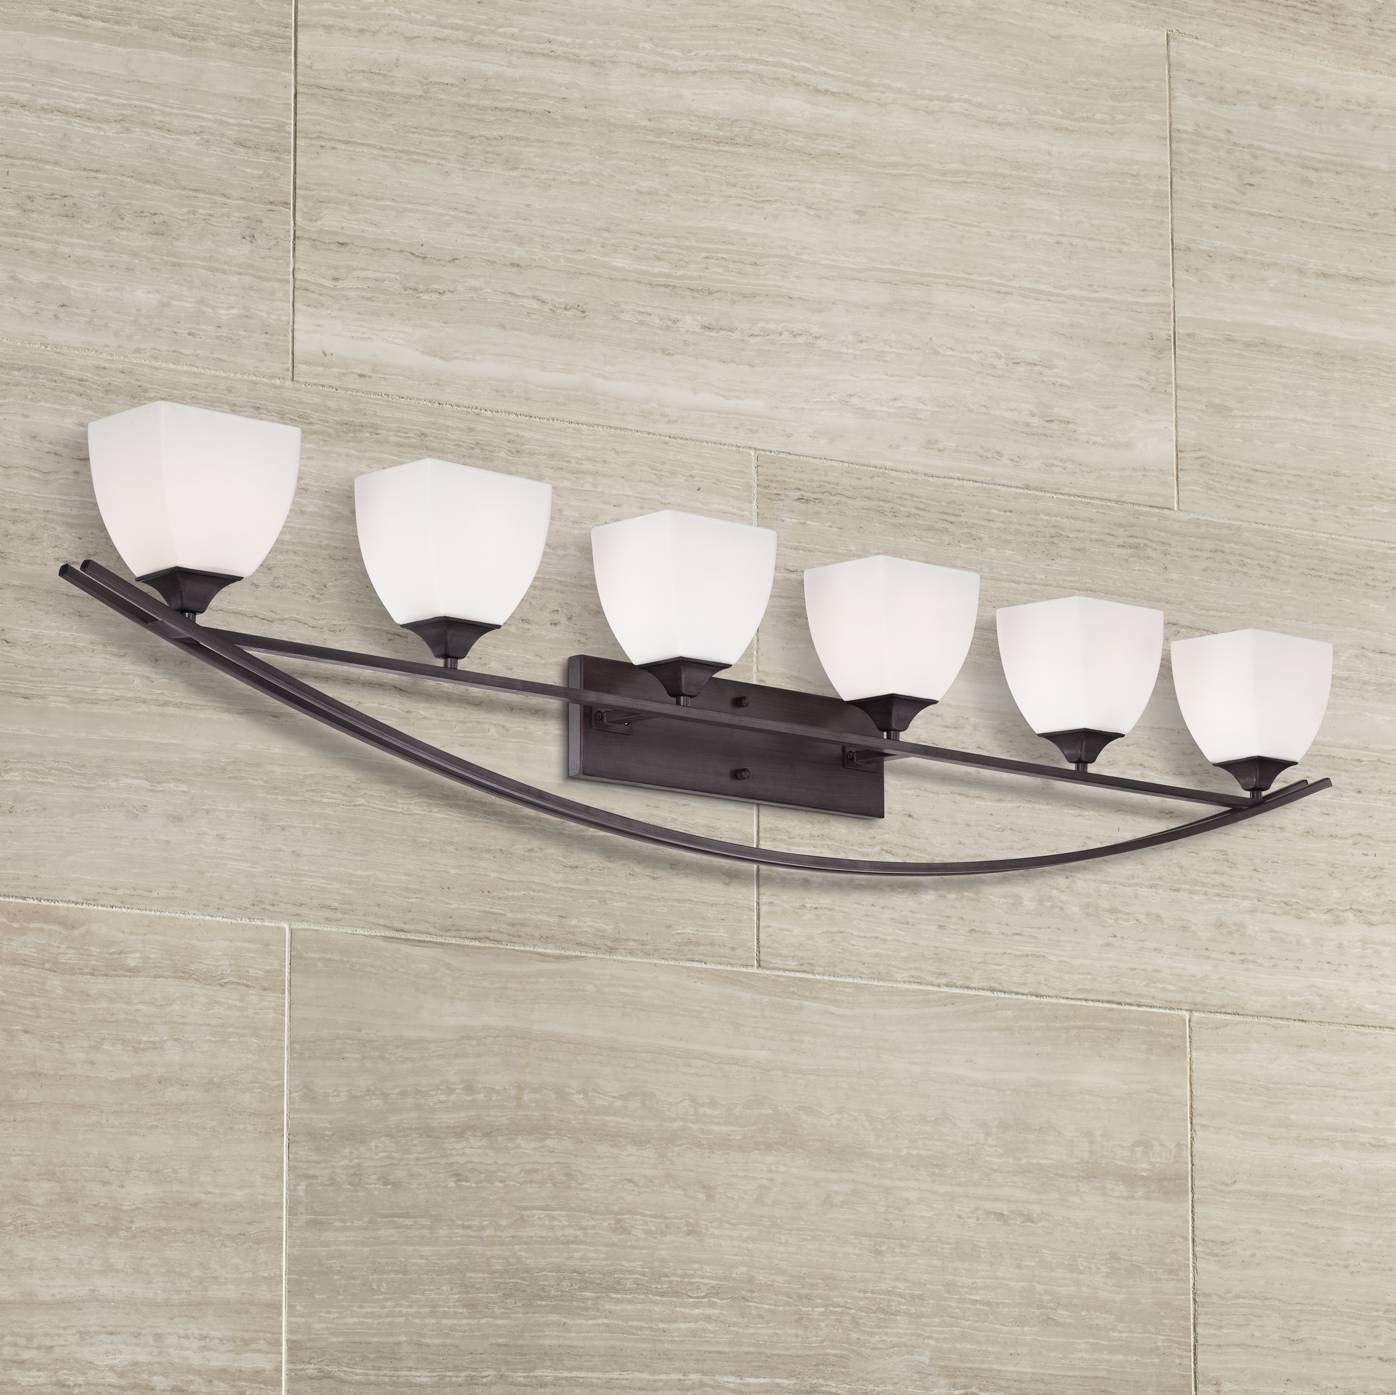 Jenisen Arch Modern Farmhouse Wall Light Bronze Hardwired 62 3 4 Wide 6-Light Fixture White Glass for Bathroom Vanity Mirror – Franklin Iron Works